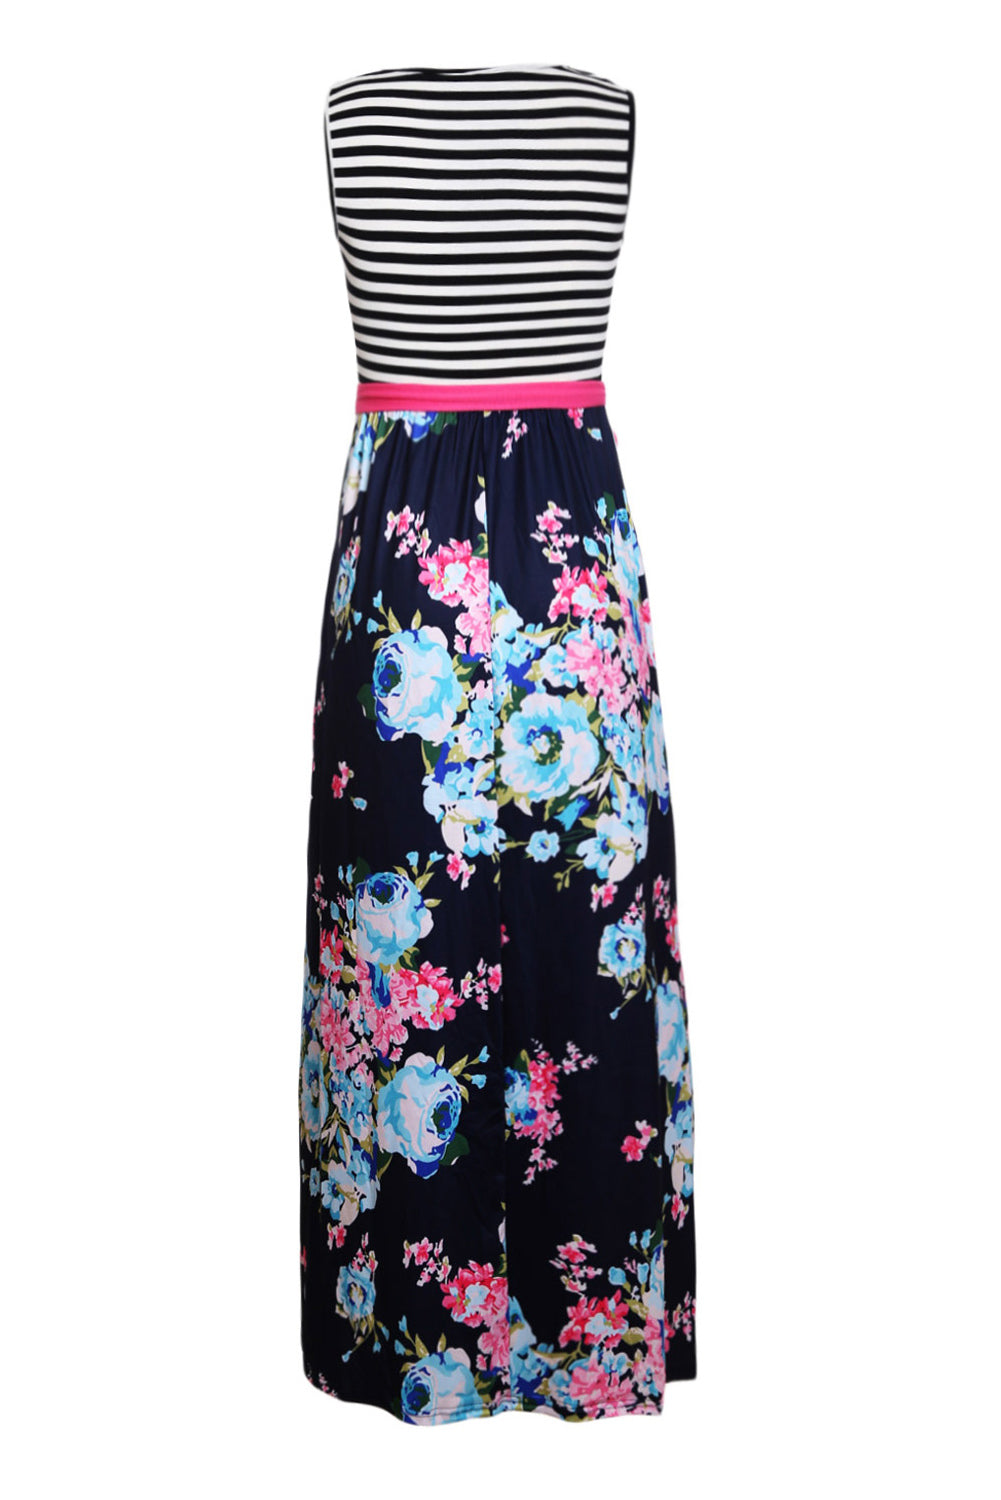 Blue Pink Floral Striped Sleeveless Boho Dress